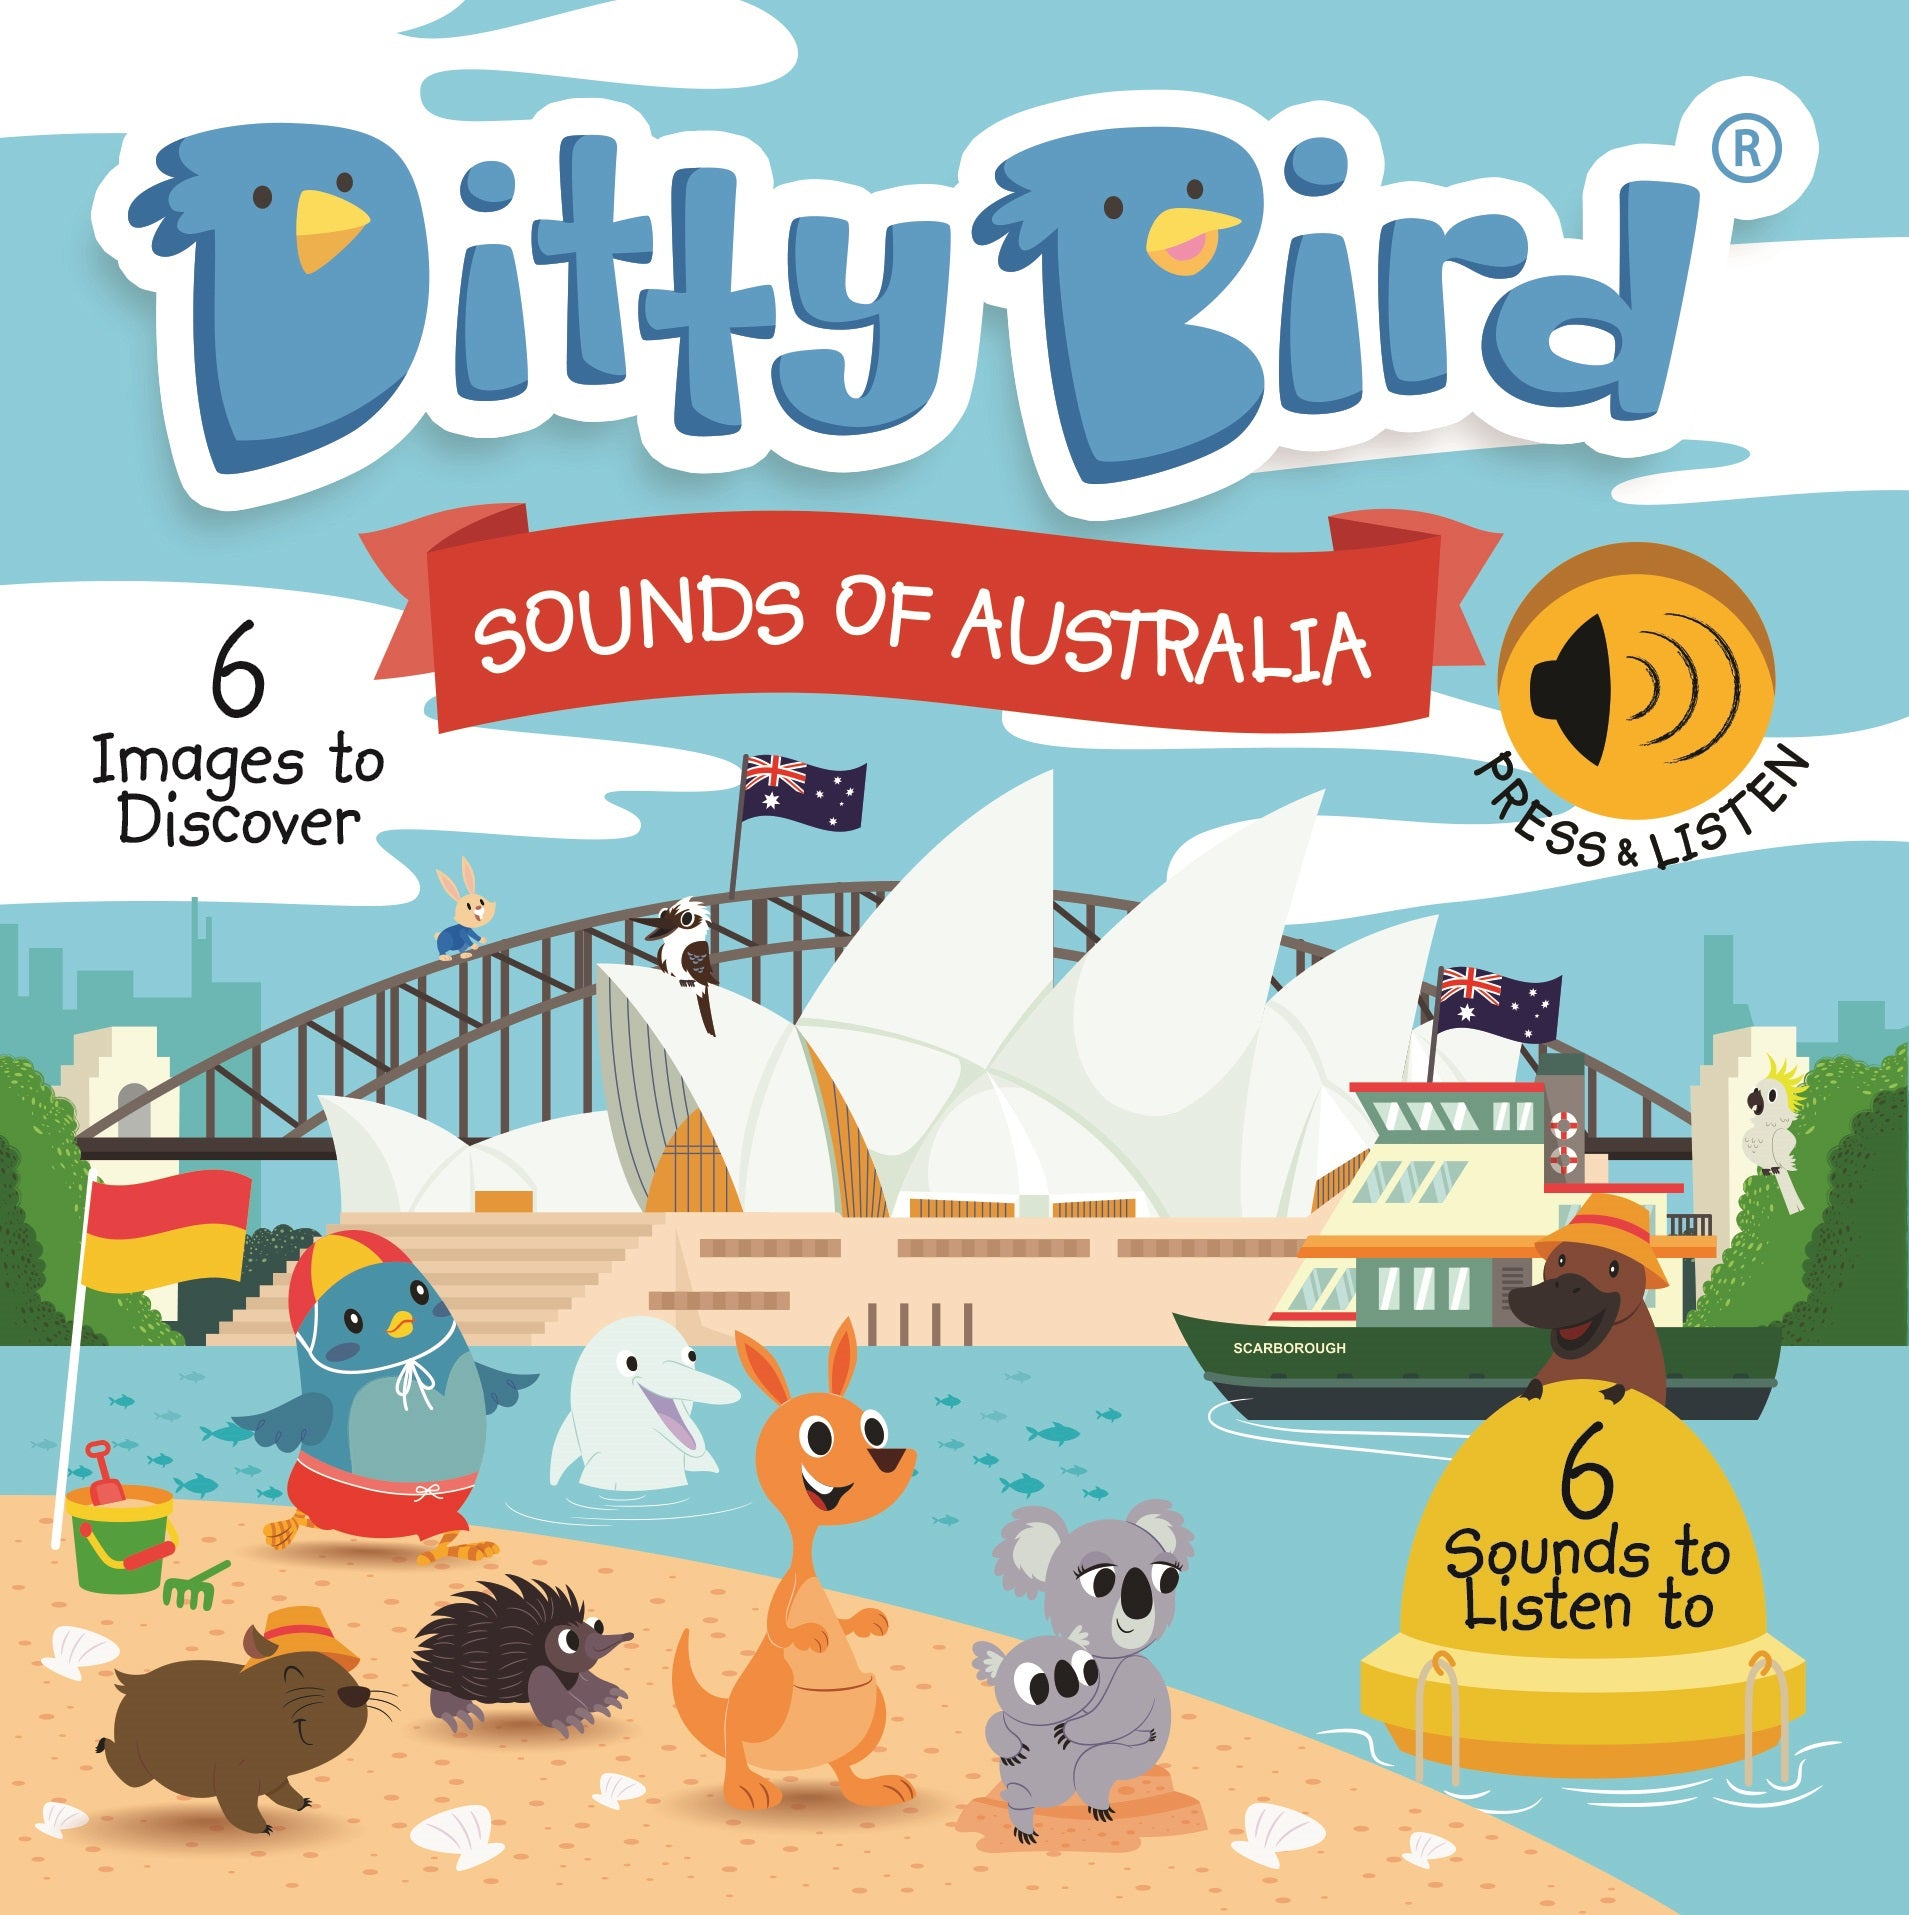 Ditty Bird - Sounds of Australia